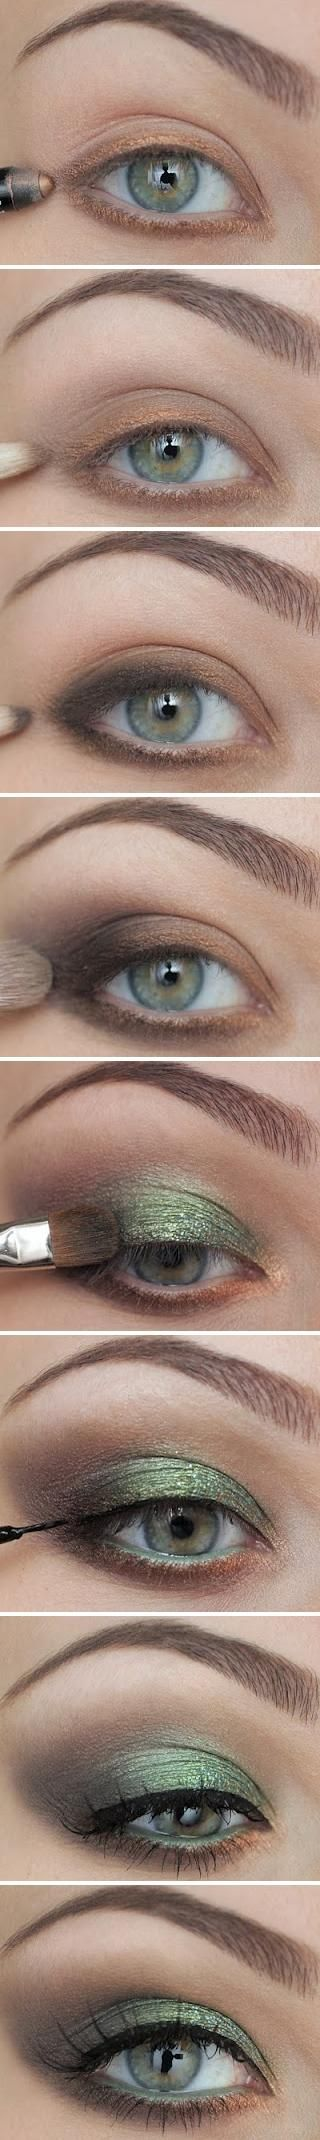 Green eyesGreen Eyeshadow, Eye Makeup, Eye Color, Eye Shadows, Brown Eye, Smoky Eye, Hazel Eye, Eyeshadows, Smokey Eye